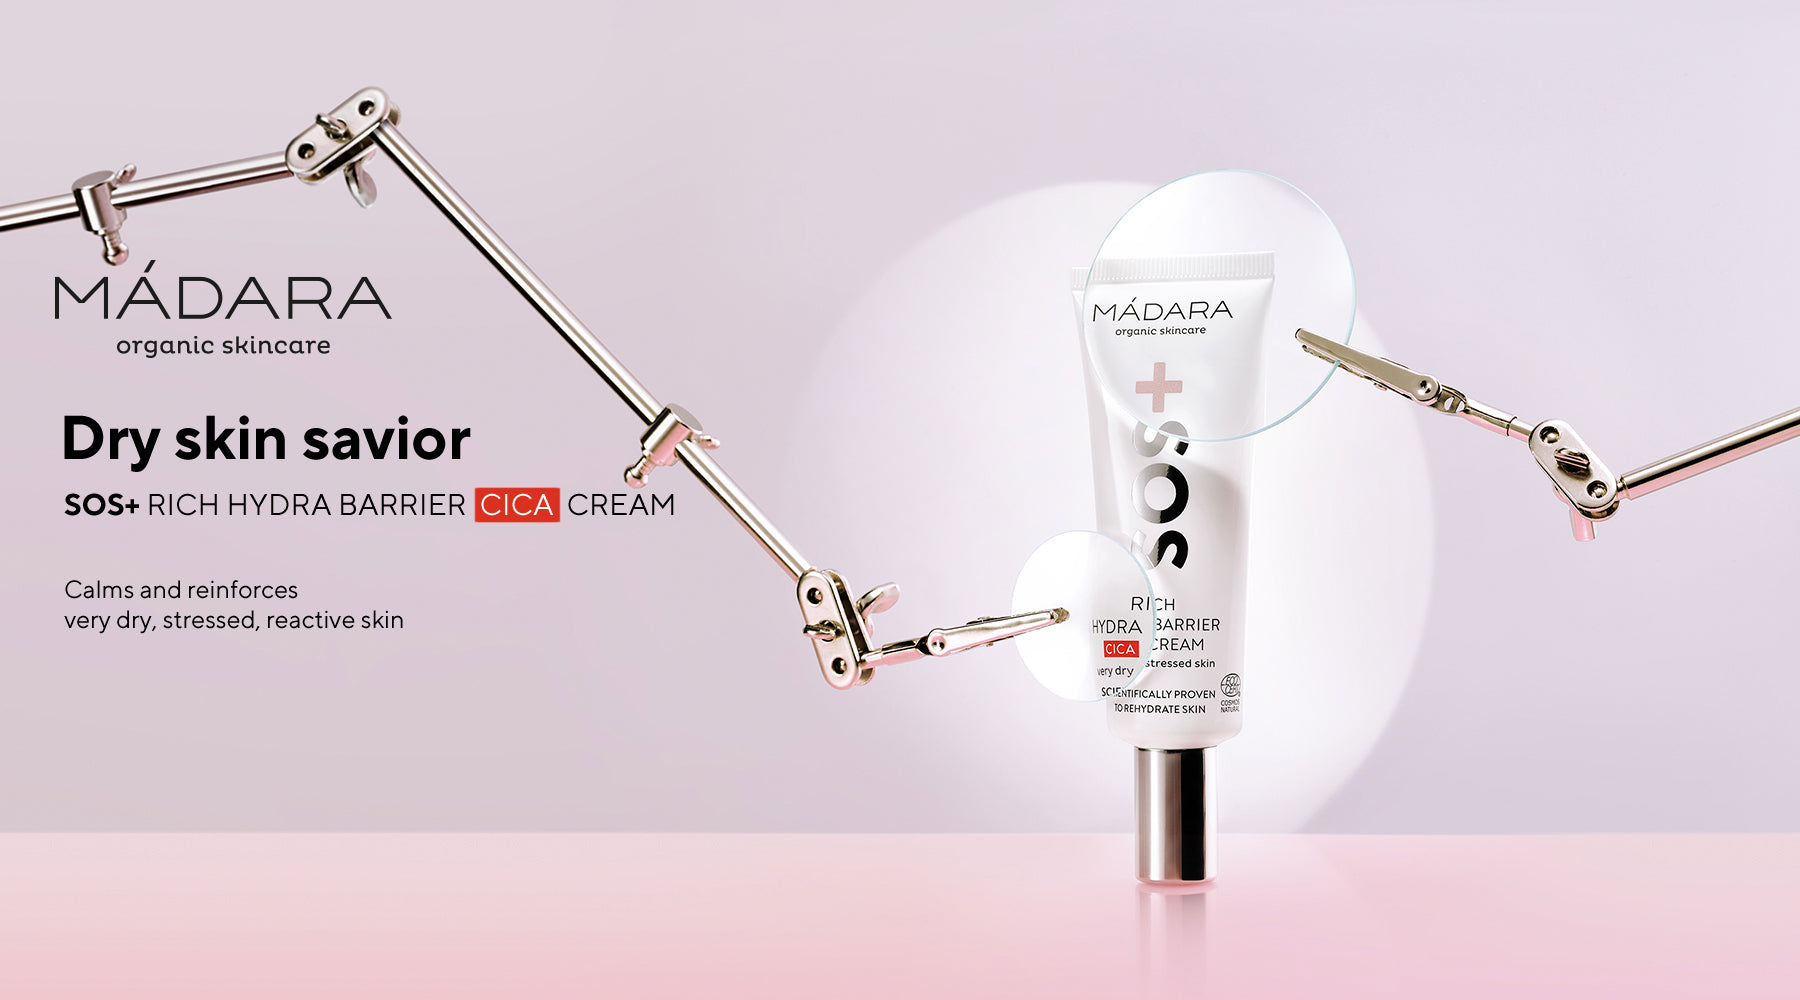 MADARA Cica Cream - Just Landed